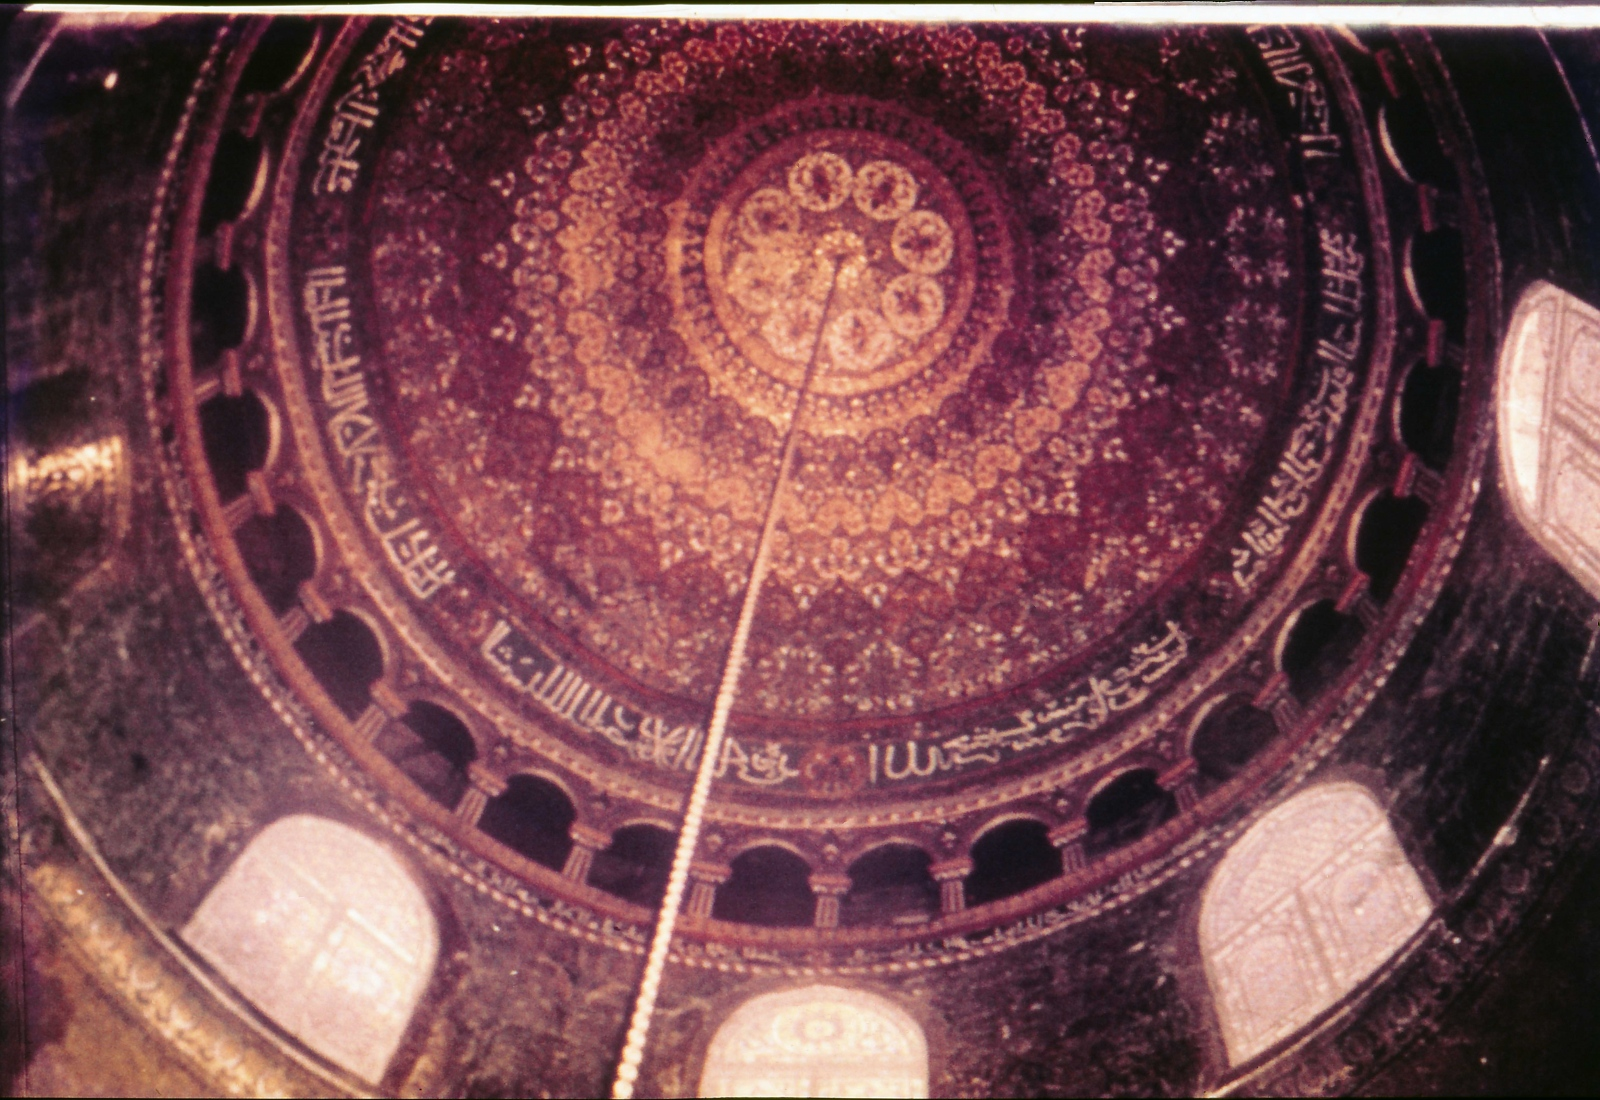 Mosaic inside Dome of the Rock